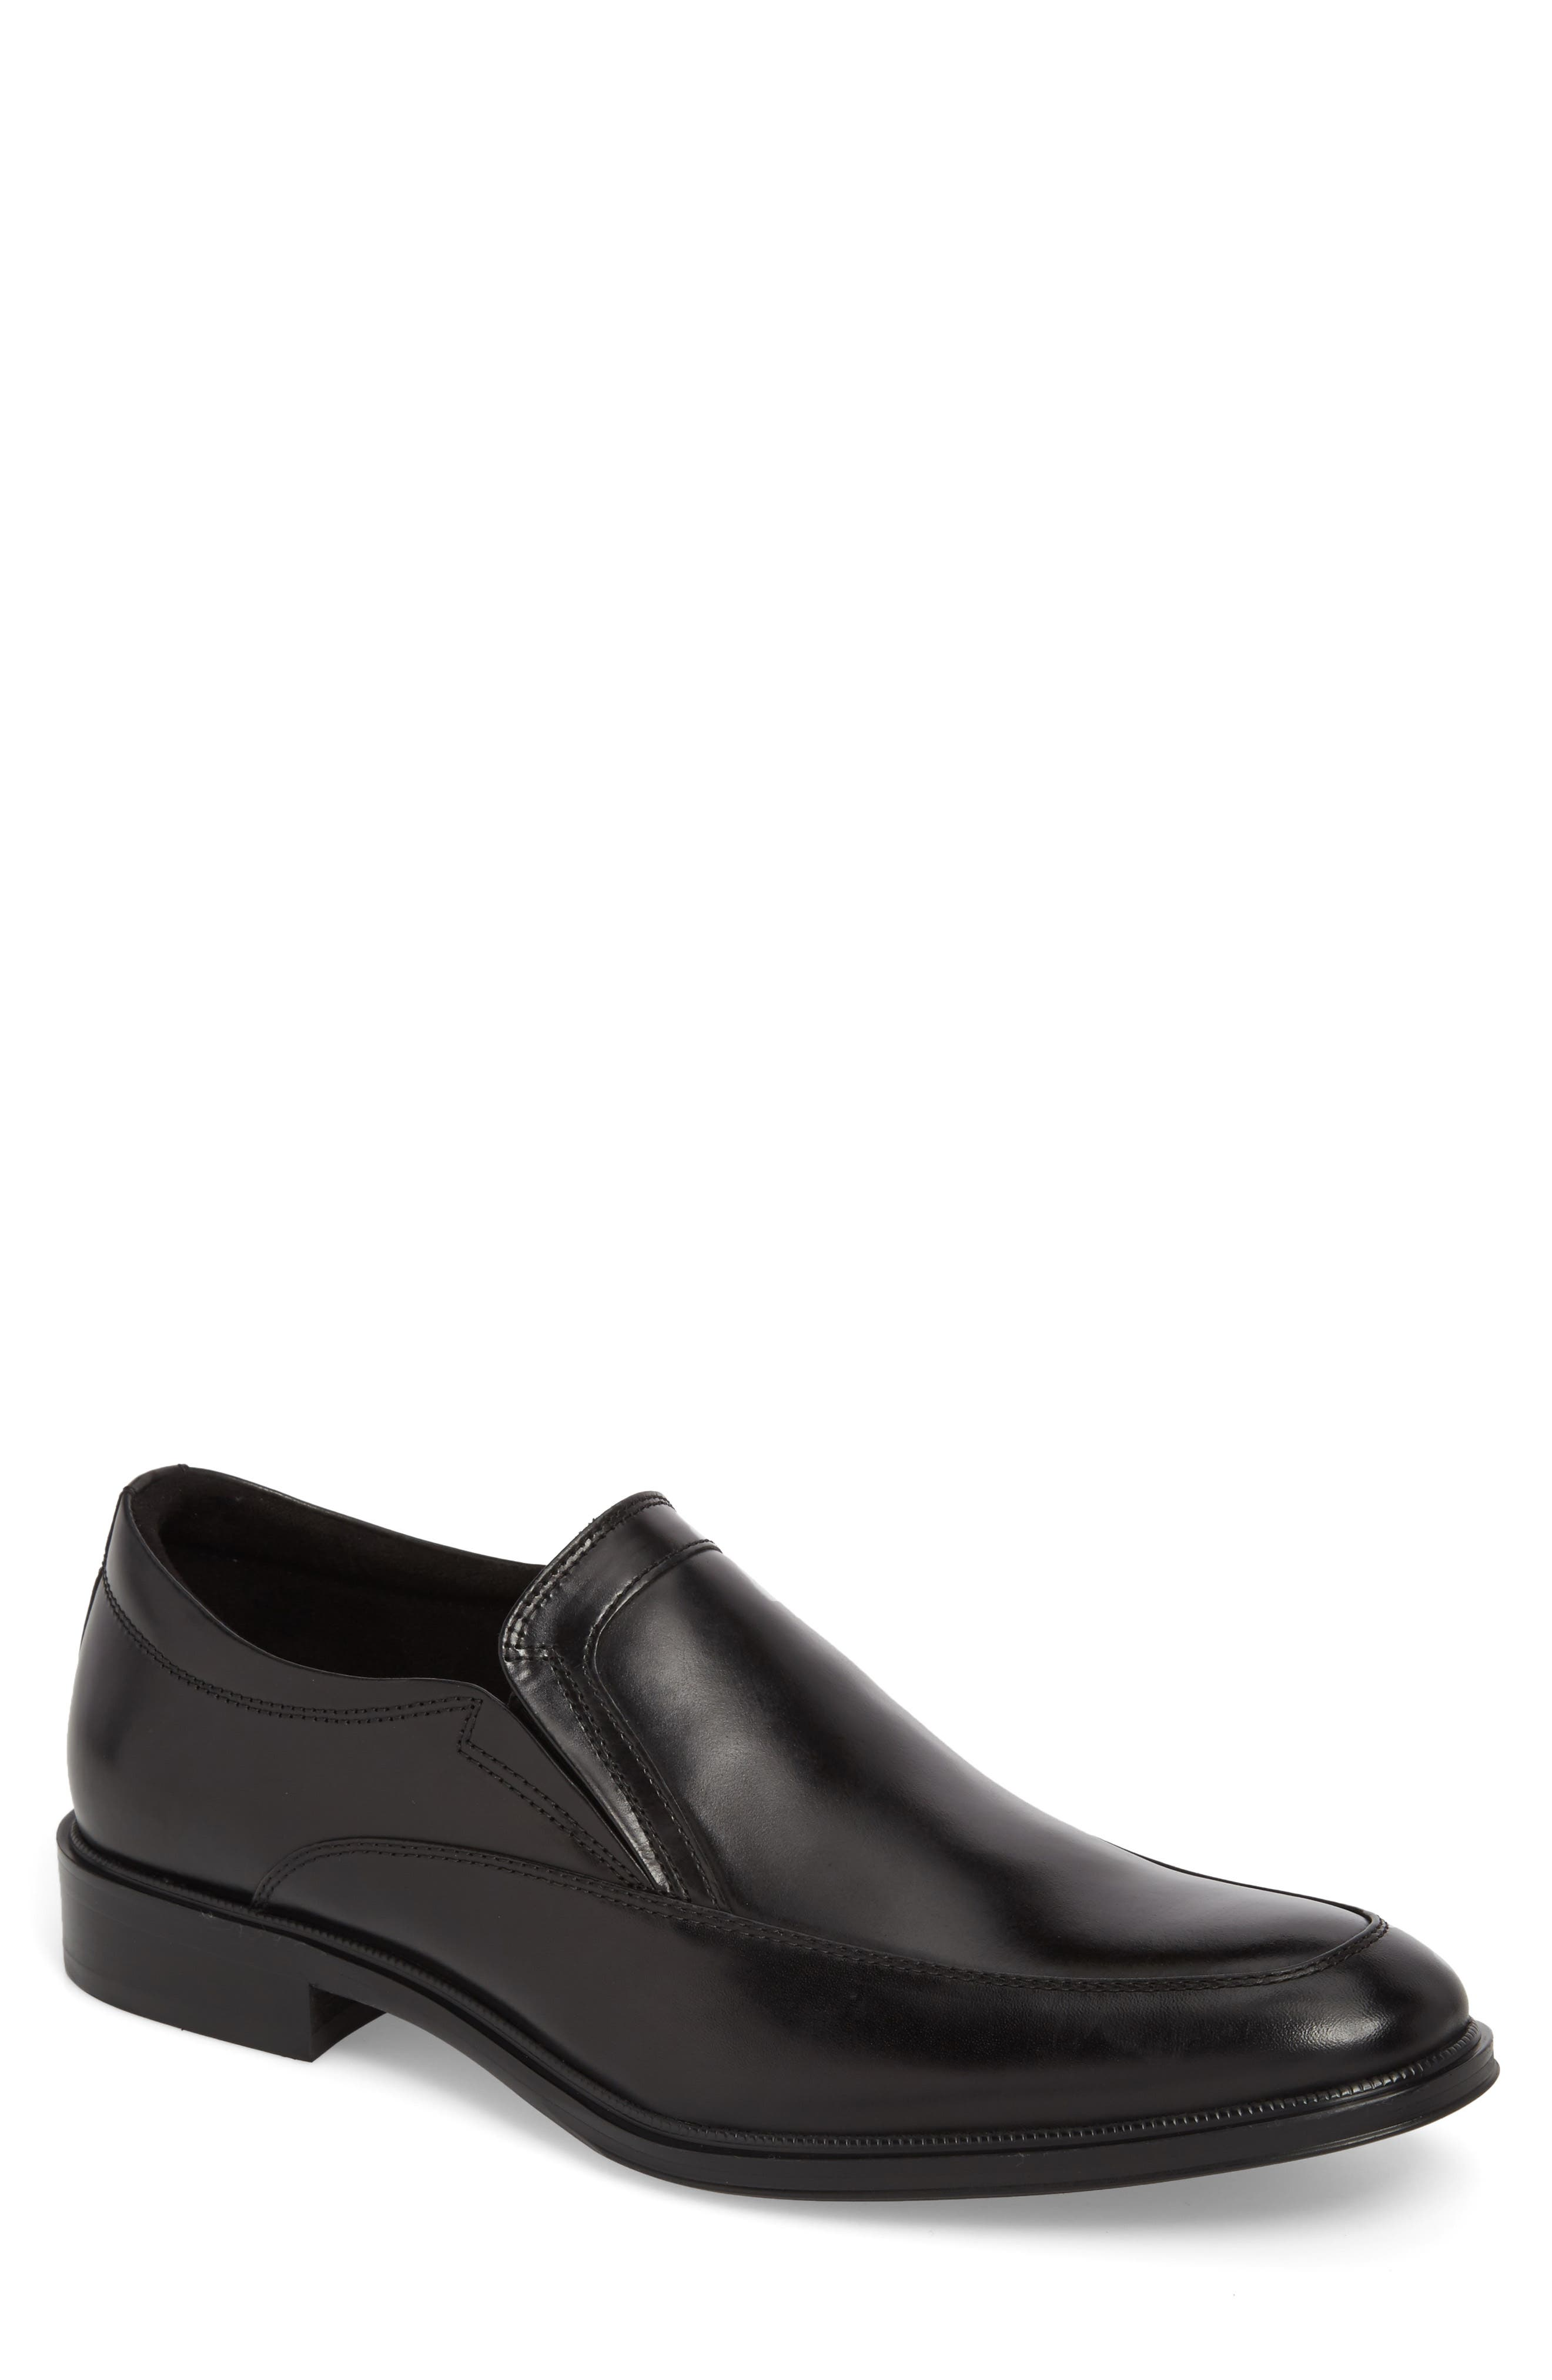 Tully Venetian Loafer,                         Main,                         color, Black Leather